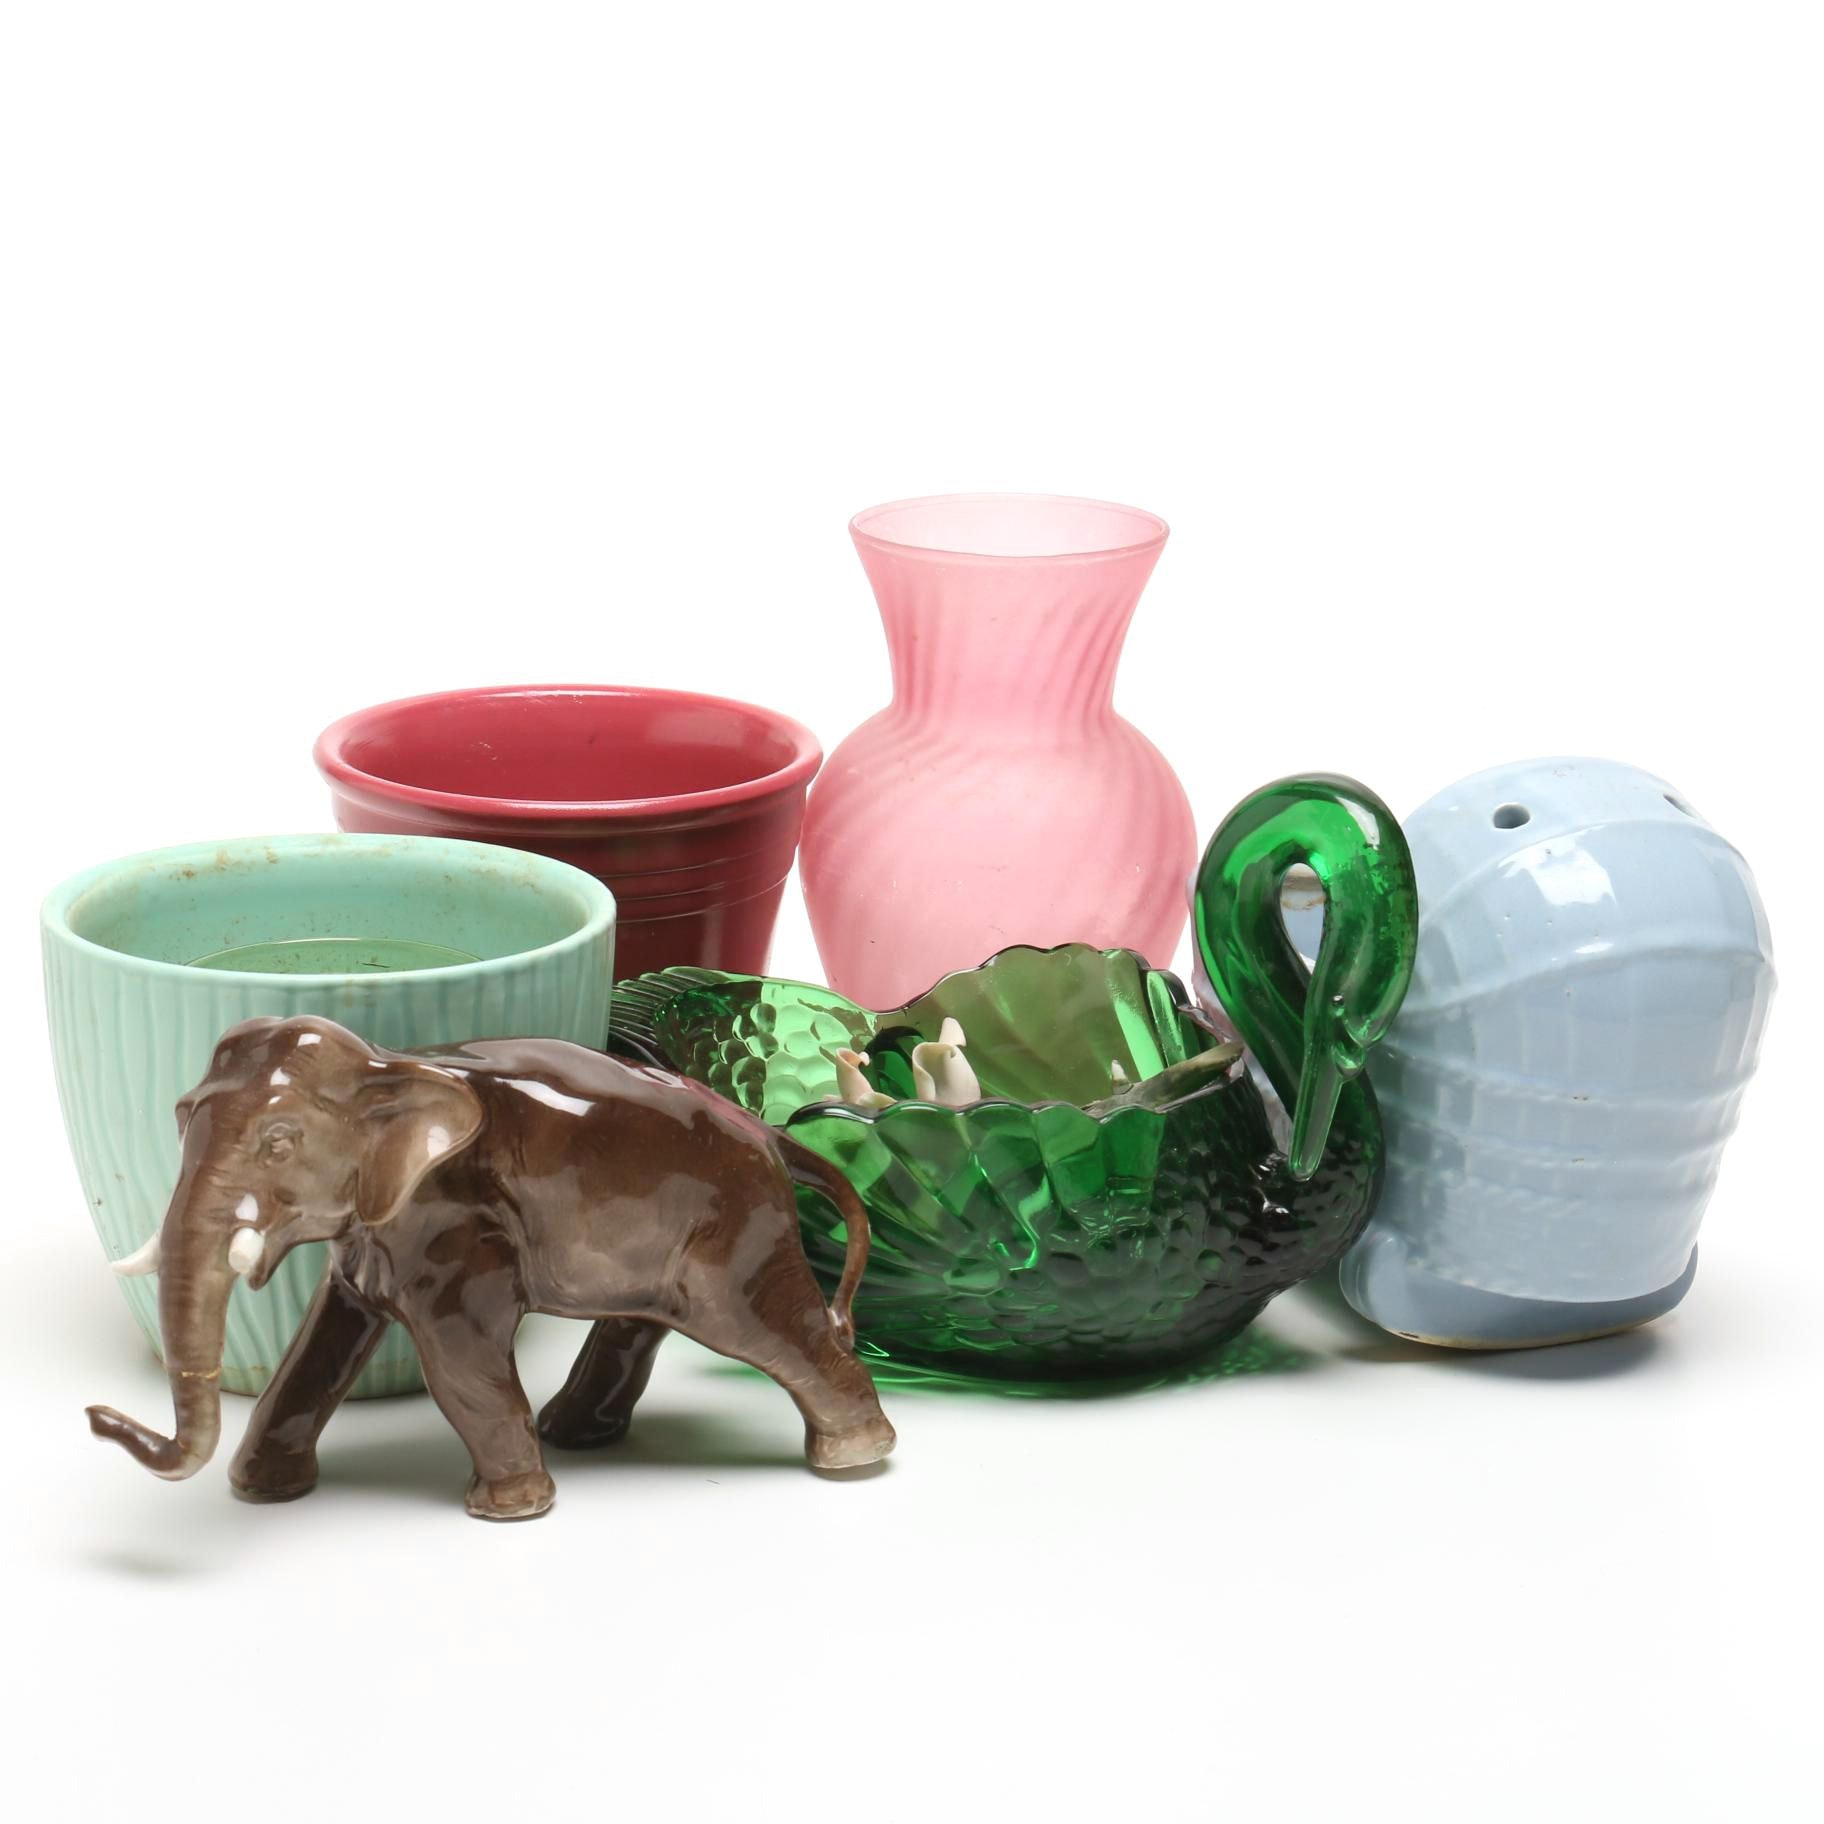 Assorted Ceramic and Glass Table Decor